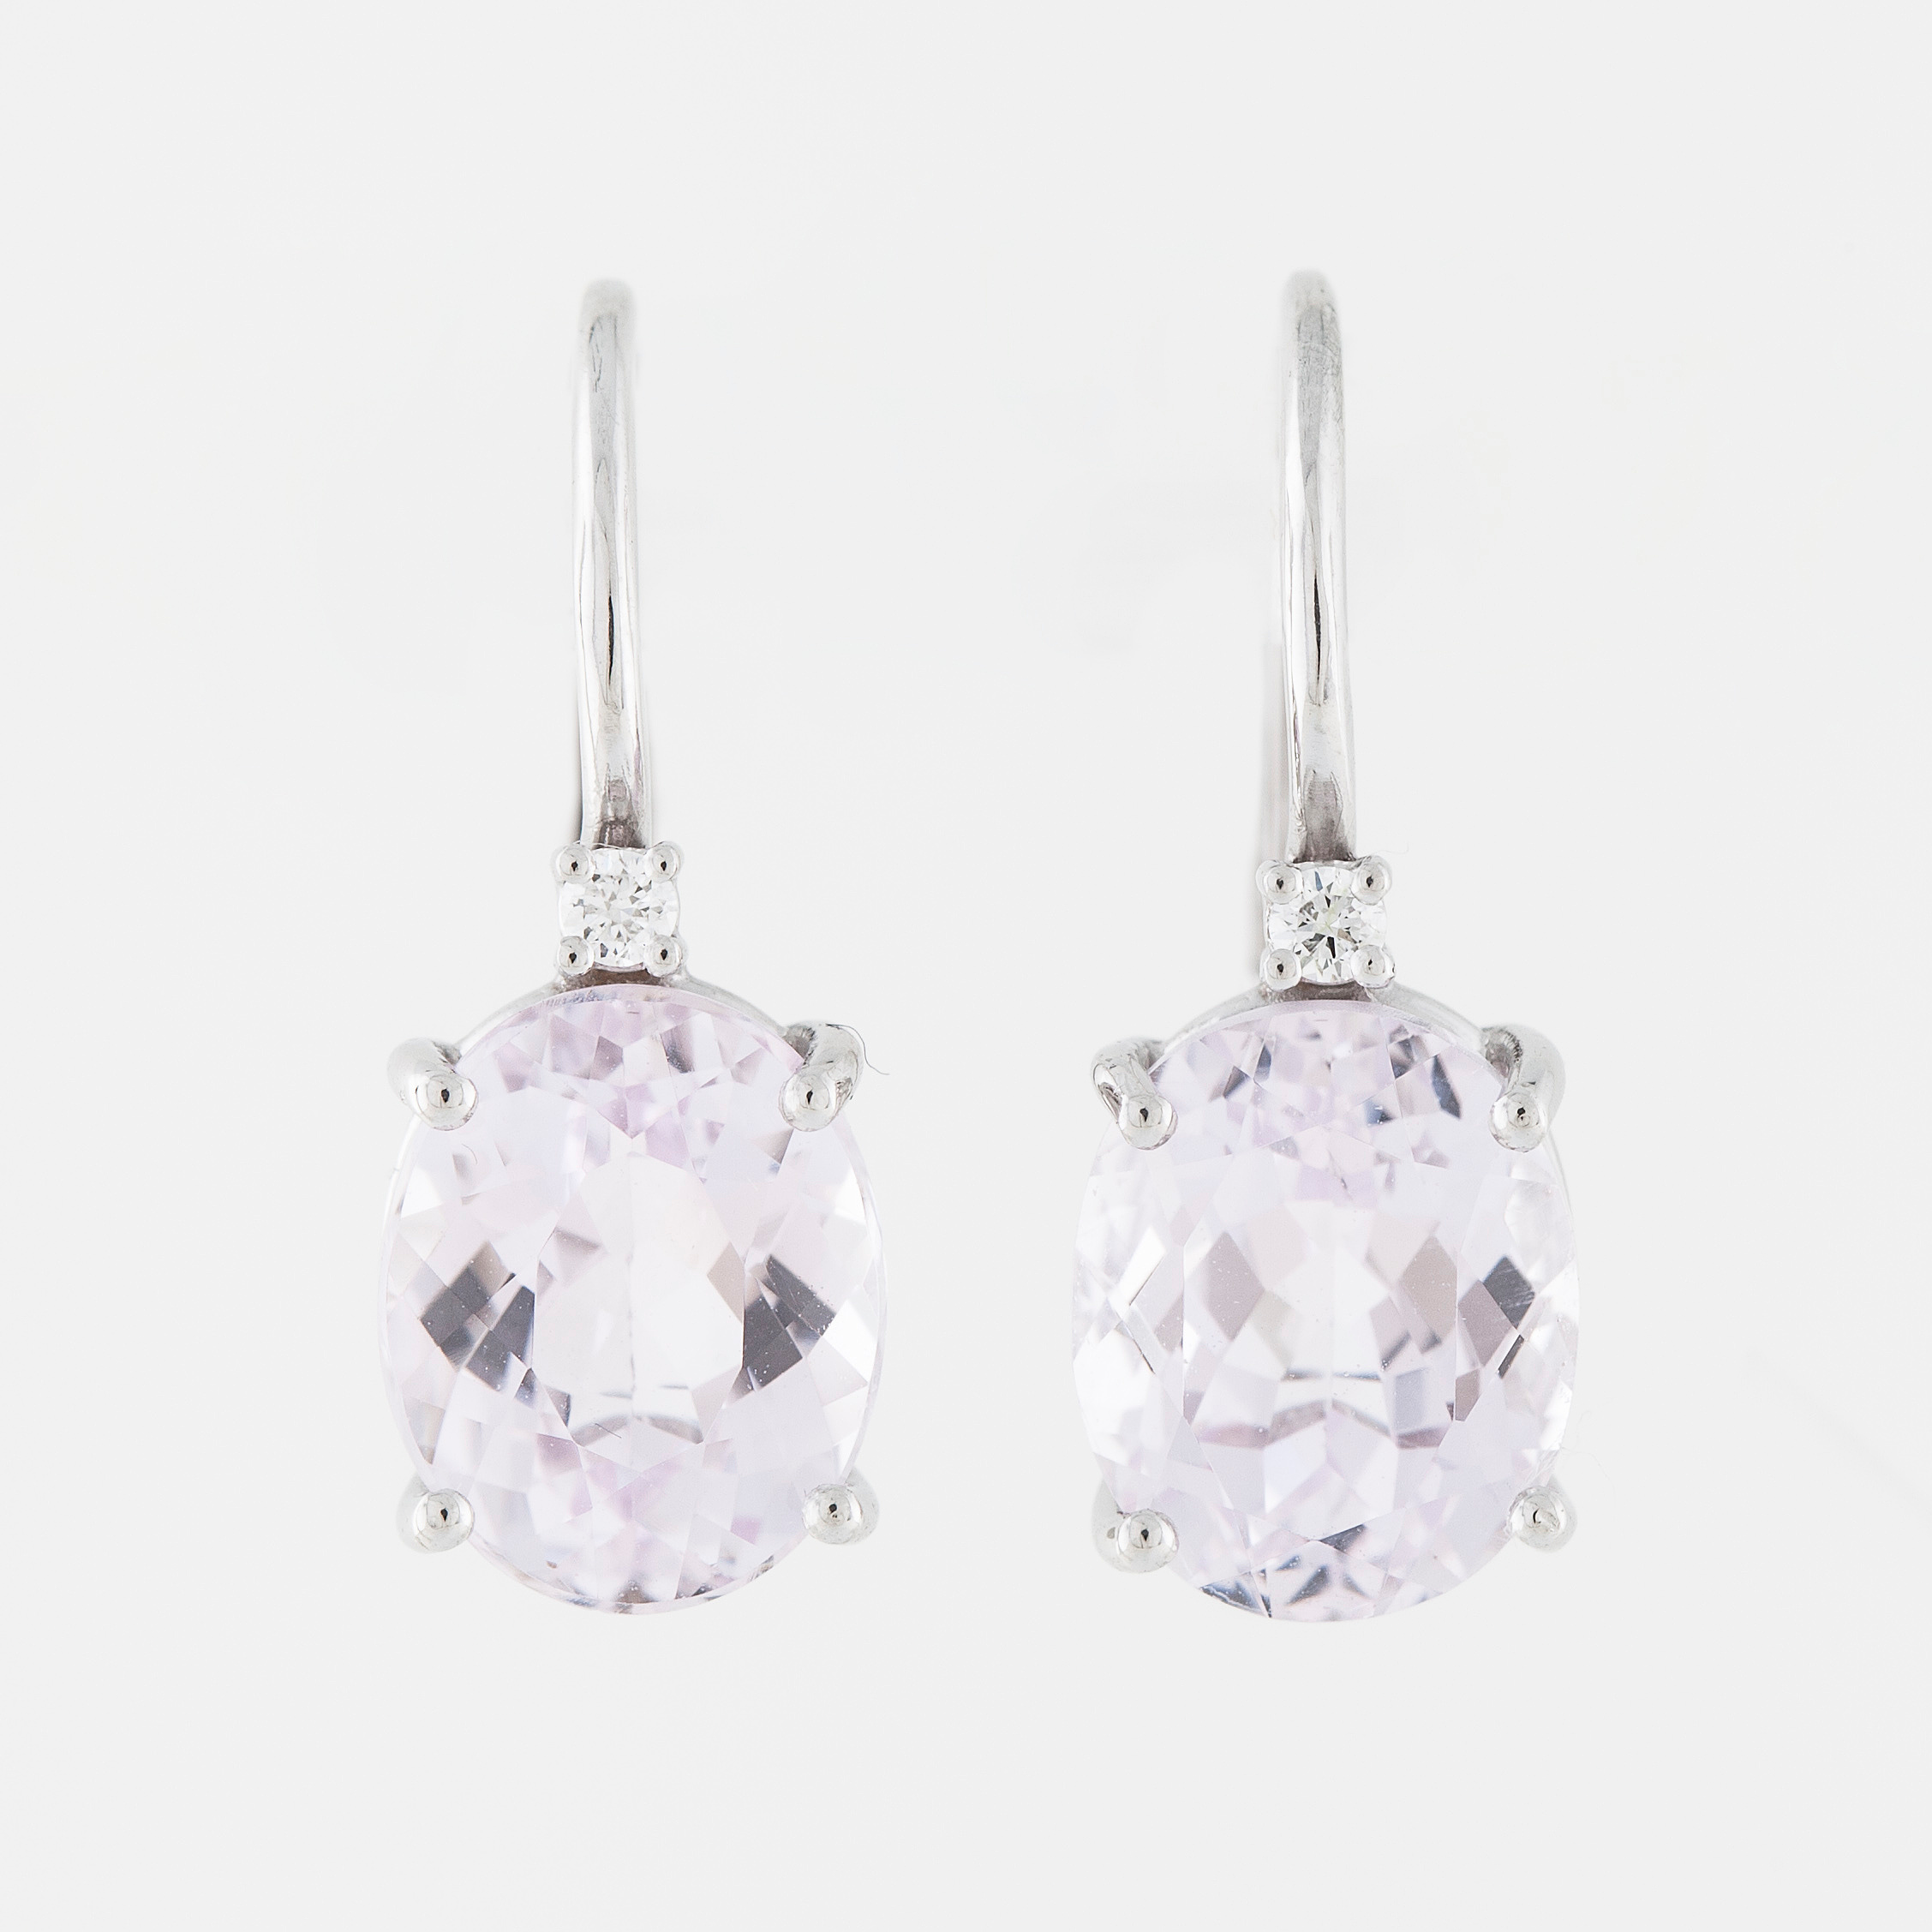 kunzite of white renee antique a lyst waterfall jewelry kind earrings gallery lewis gold one